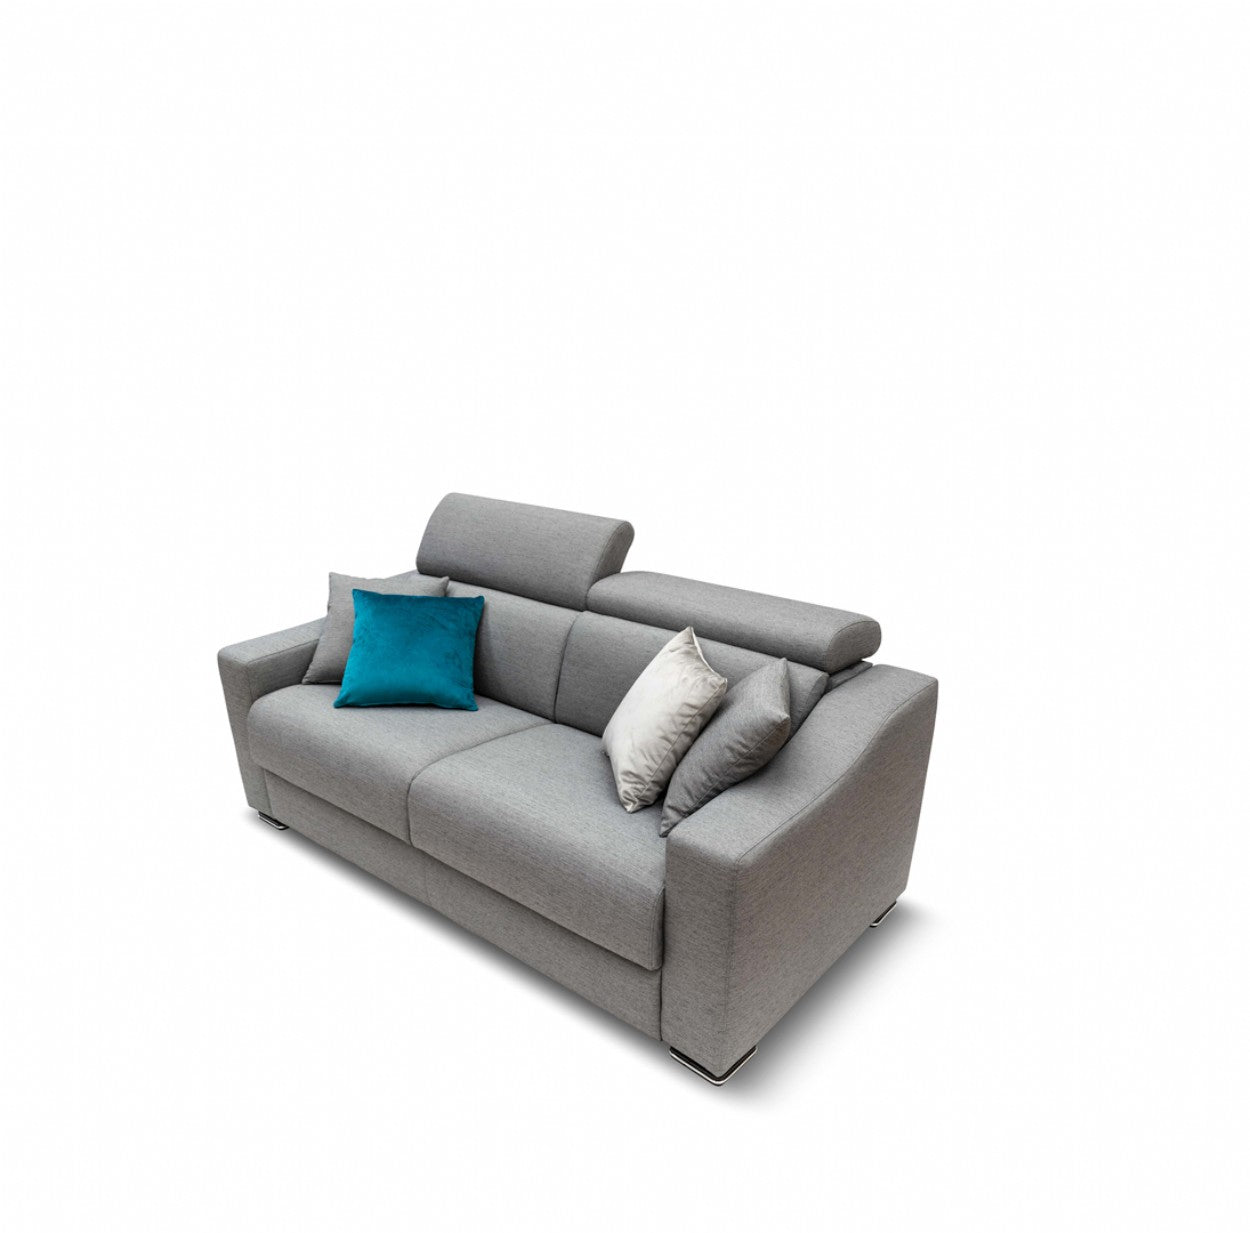 Eloise Sofa Bed-Alterego Divani-Contract Furniture Store